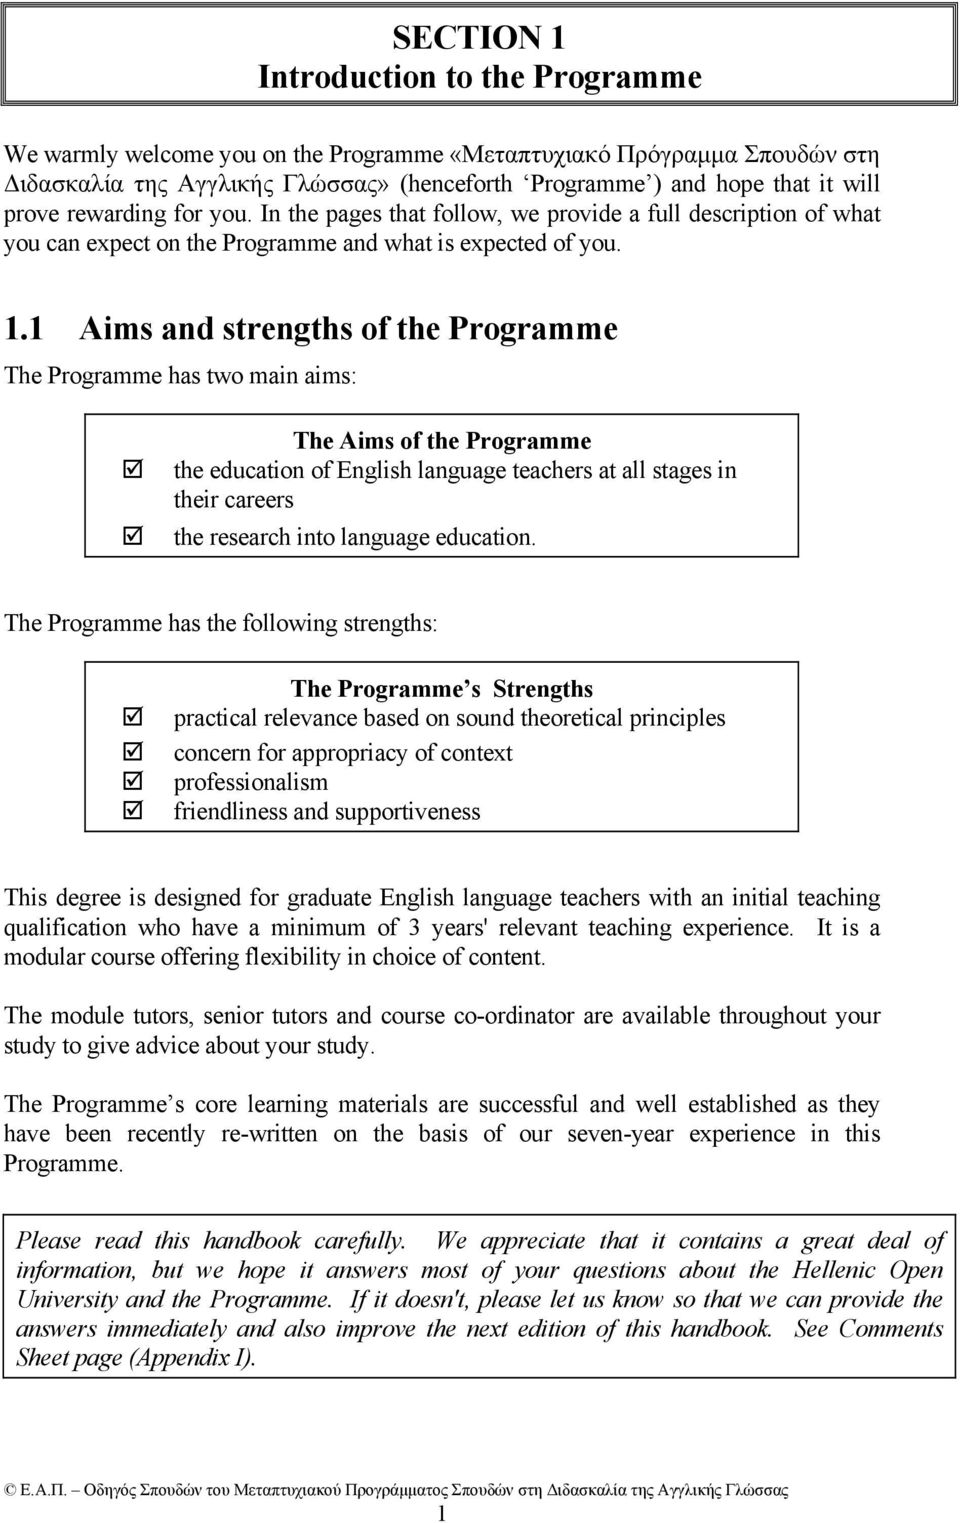 1 Aims and strengths of the Programme The Programme has two main aims: The Aims of the Programme the education of English language teachers at all stages in their careers the research into language